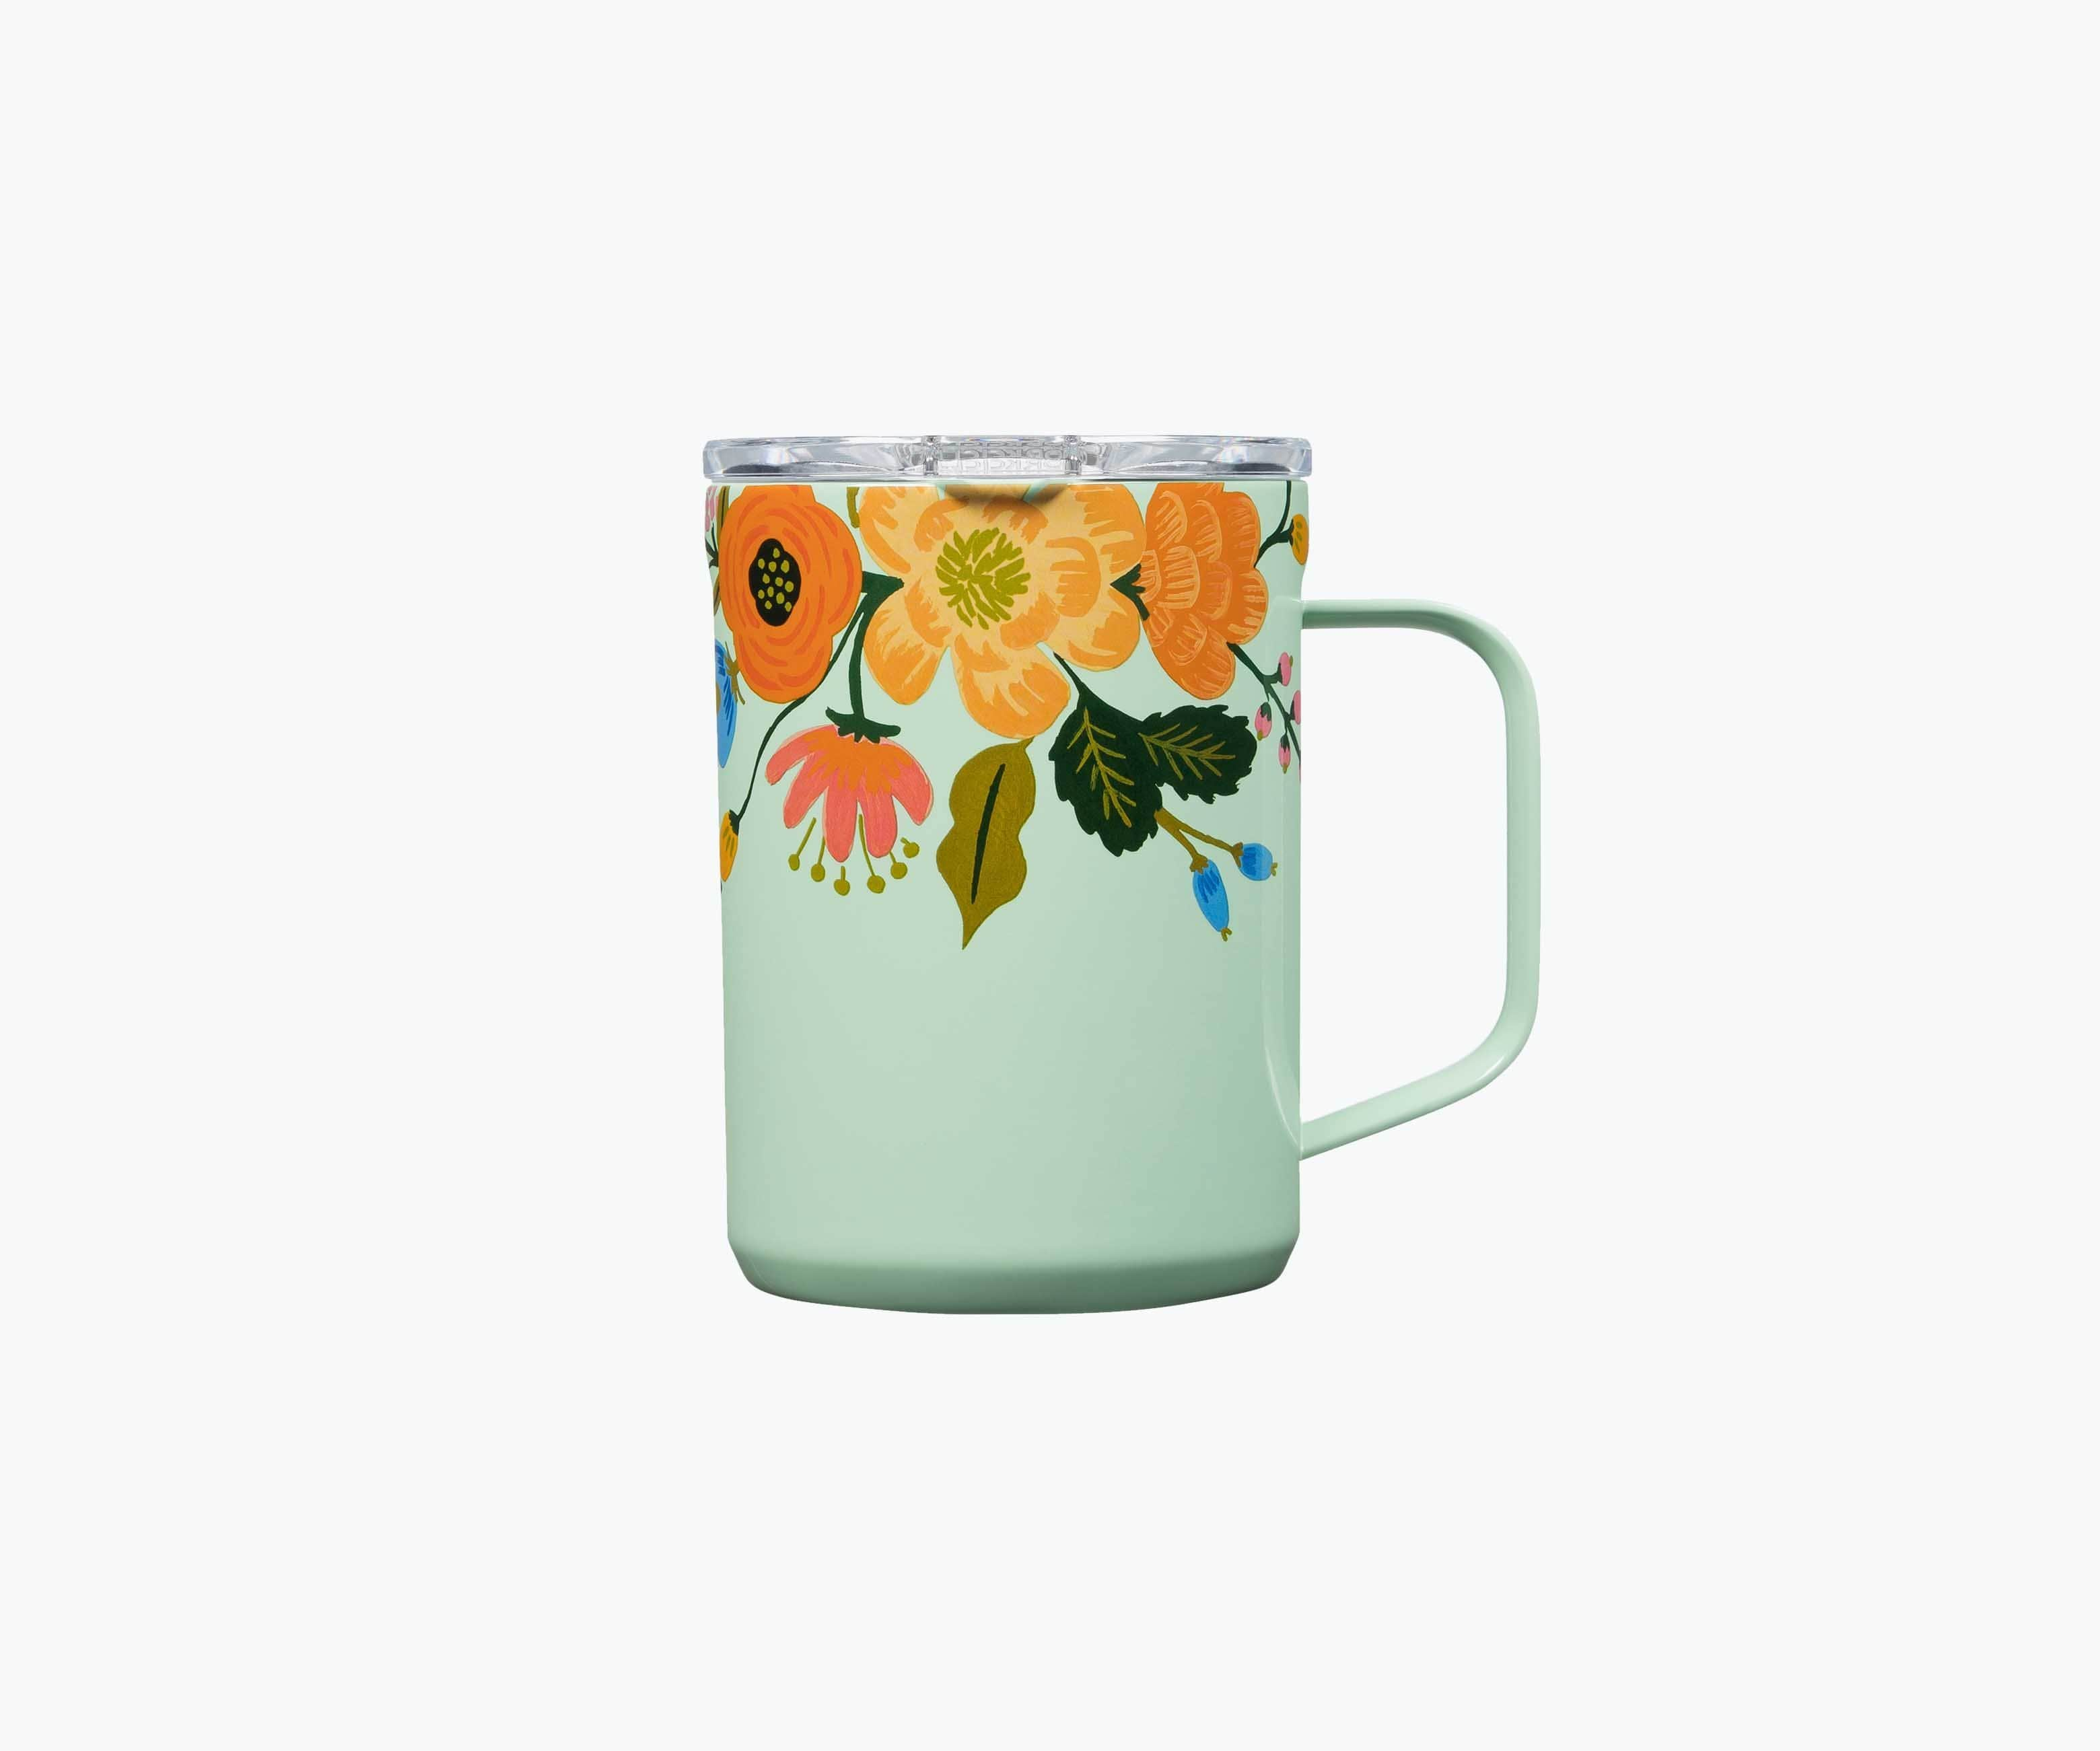 Rifle Paper Co. x Corkcicle Mug - Mint Lively Floral